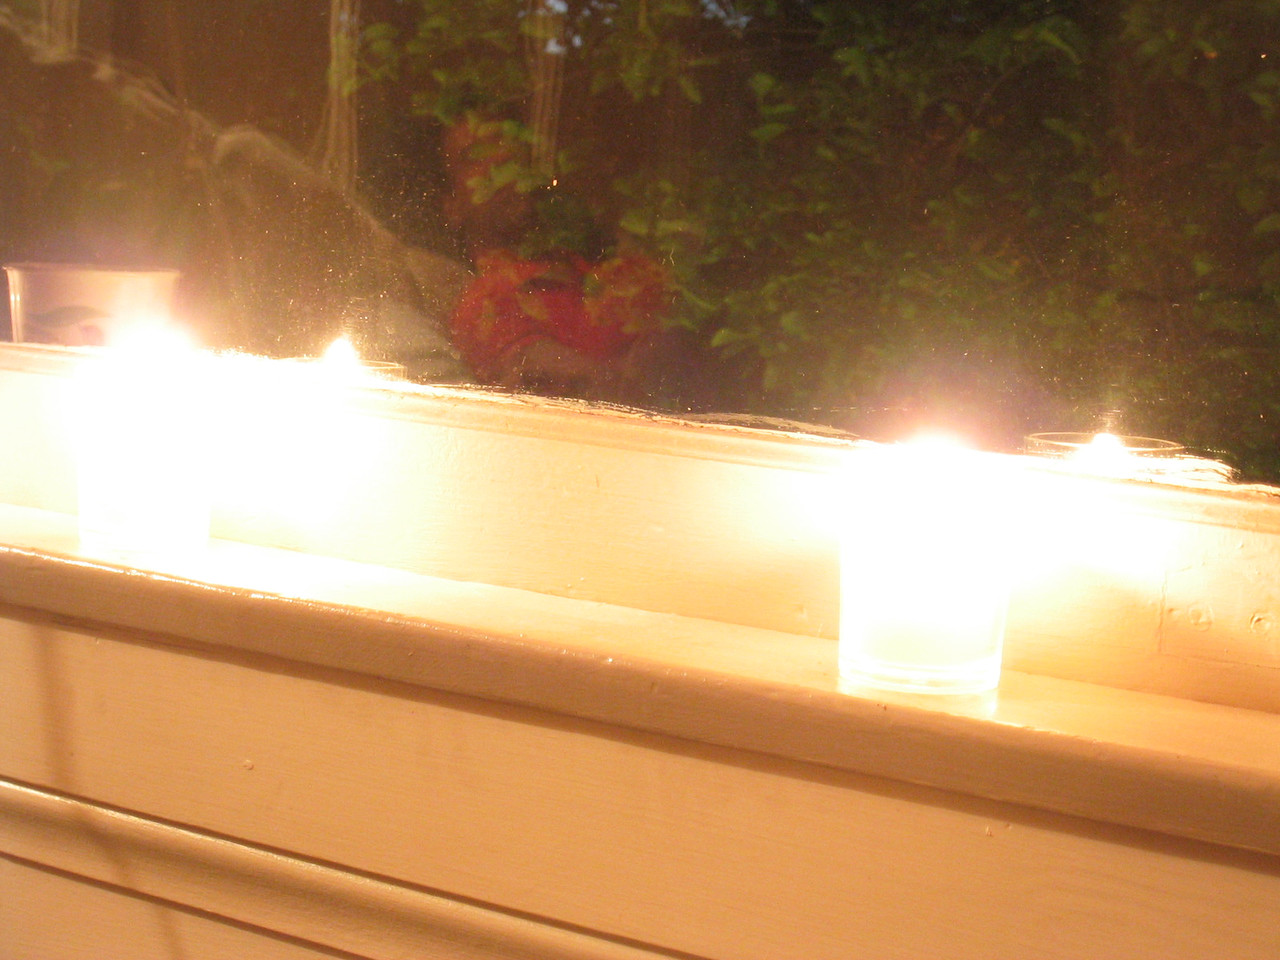 Living room candles - overexposed